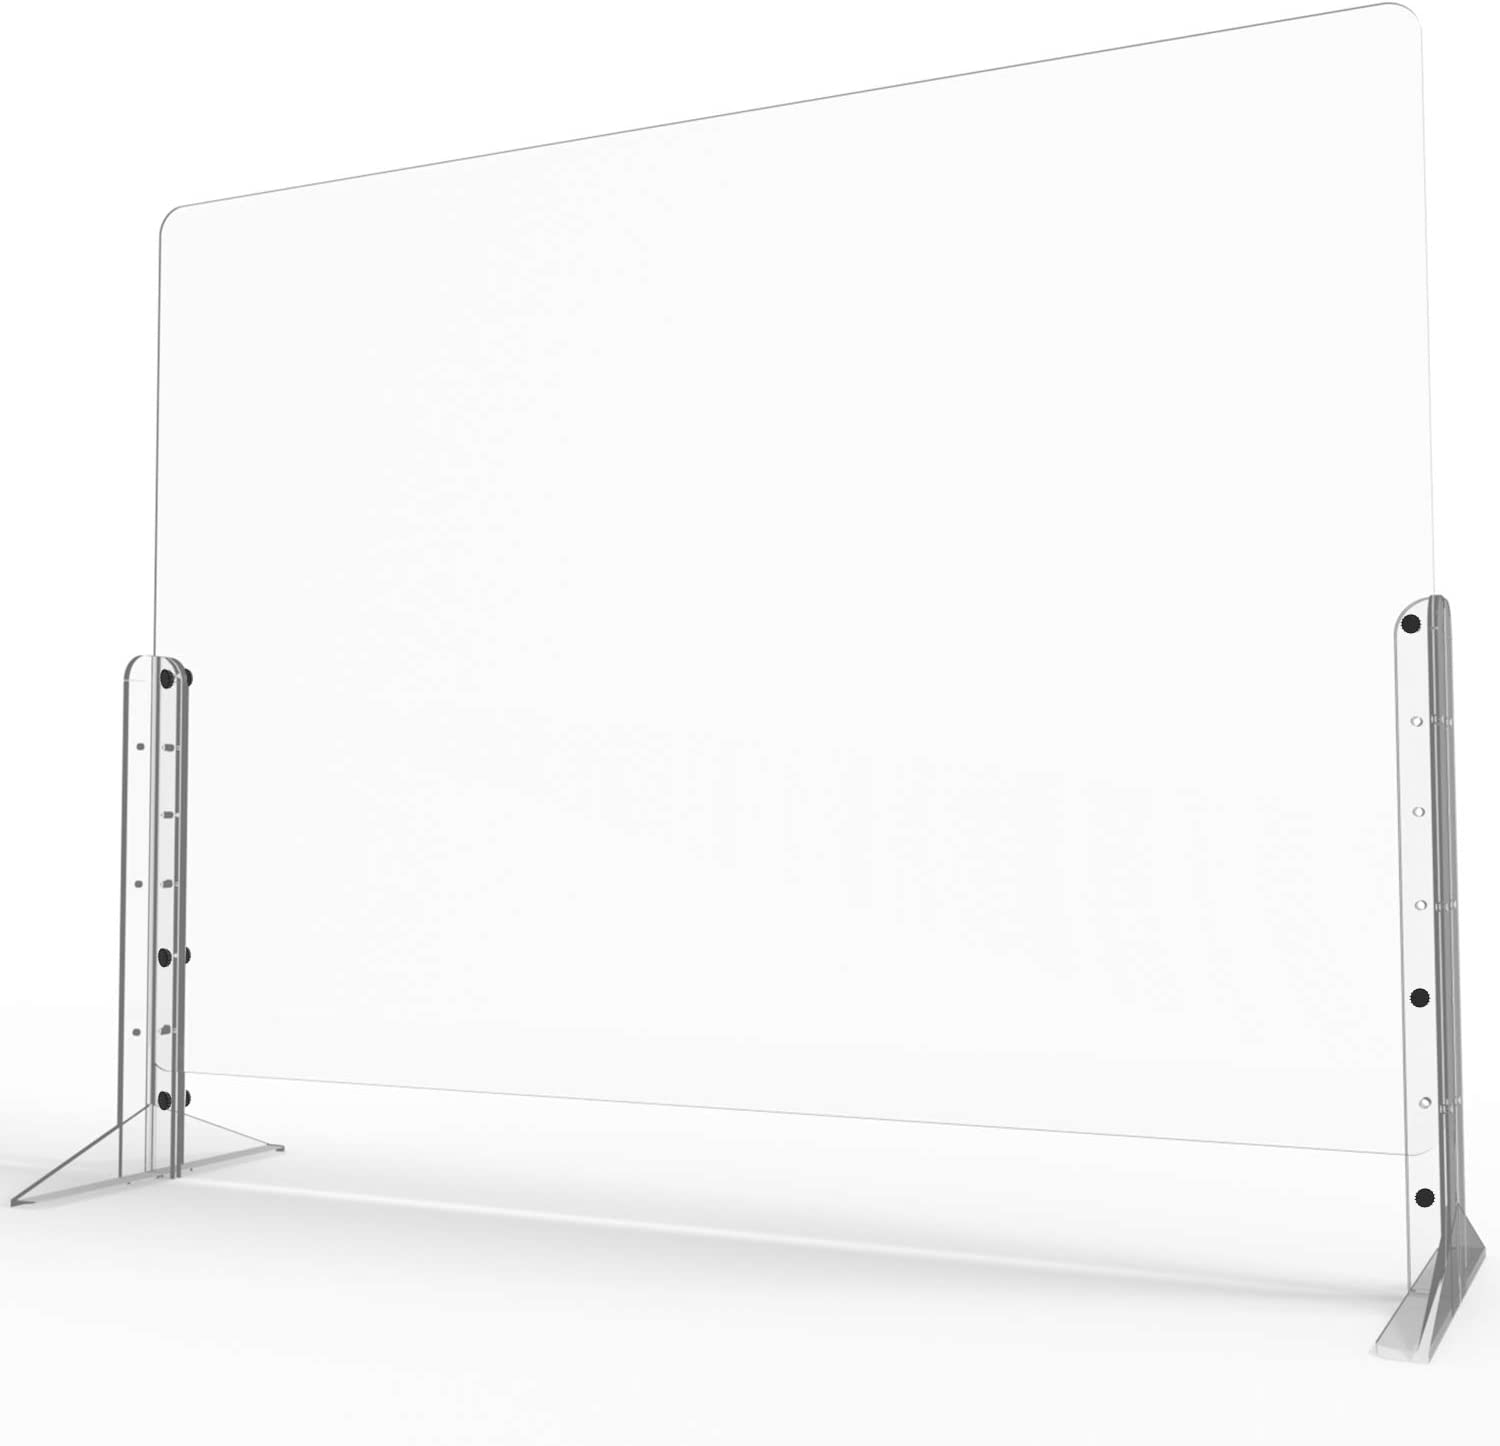 """Euway Sneeze Guards for Desk countertops,[Anti-explosion] Plexiglass Shields Barrier for [Counter] [Countertops] [Desk],Safe Barrier Shield for Table,Clear 32""""W x 24""""H"""